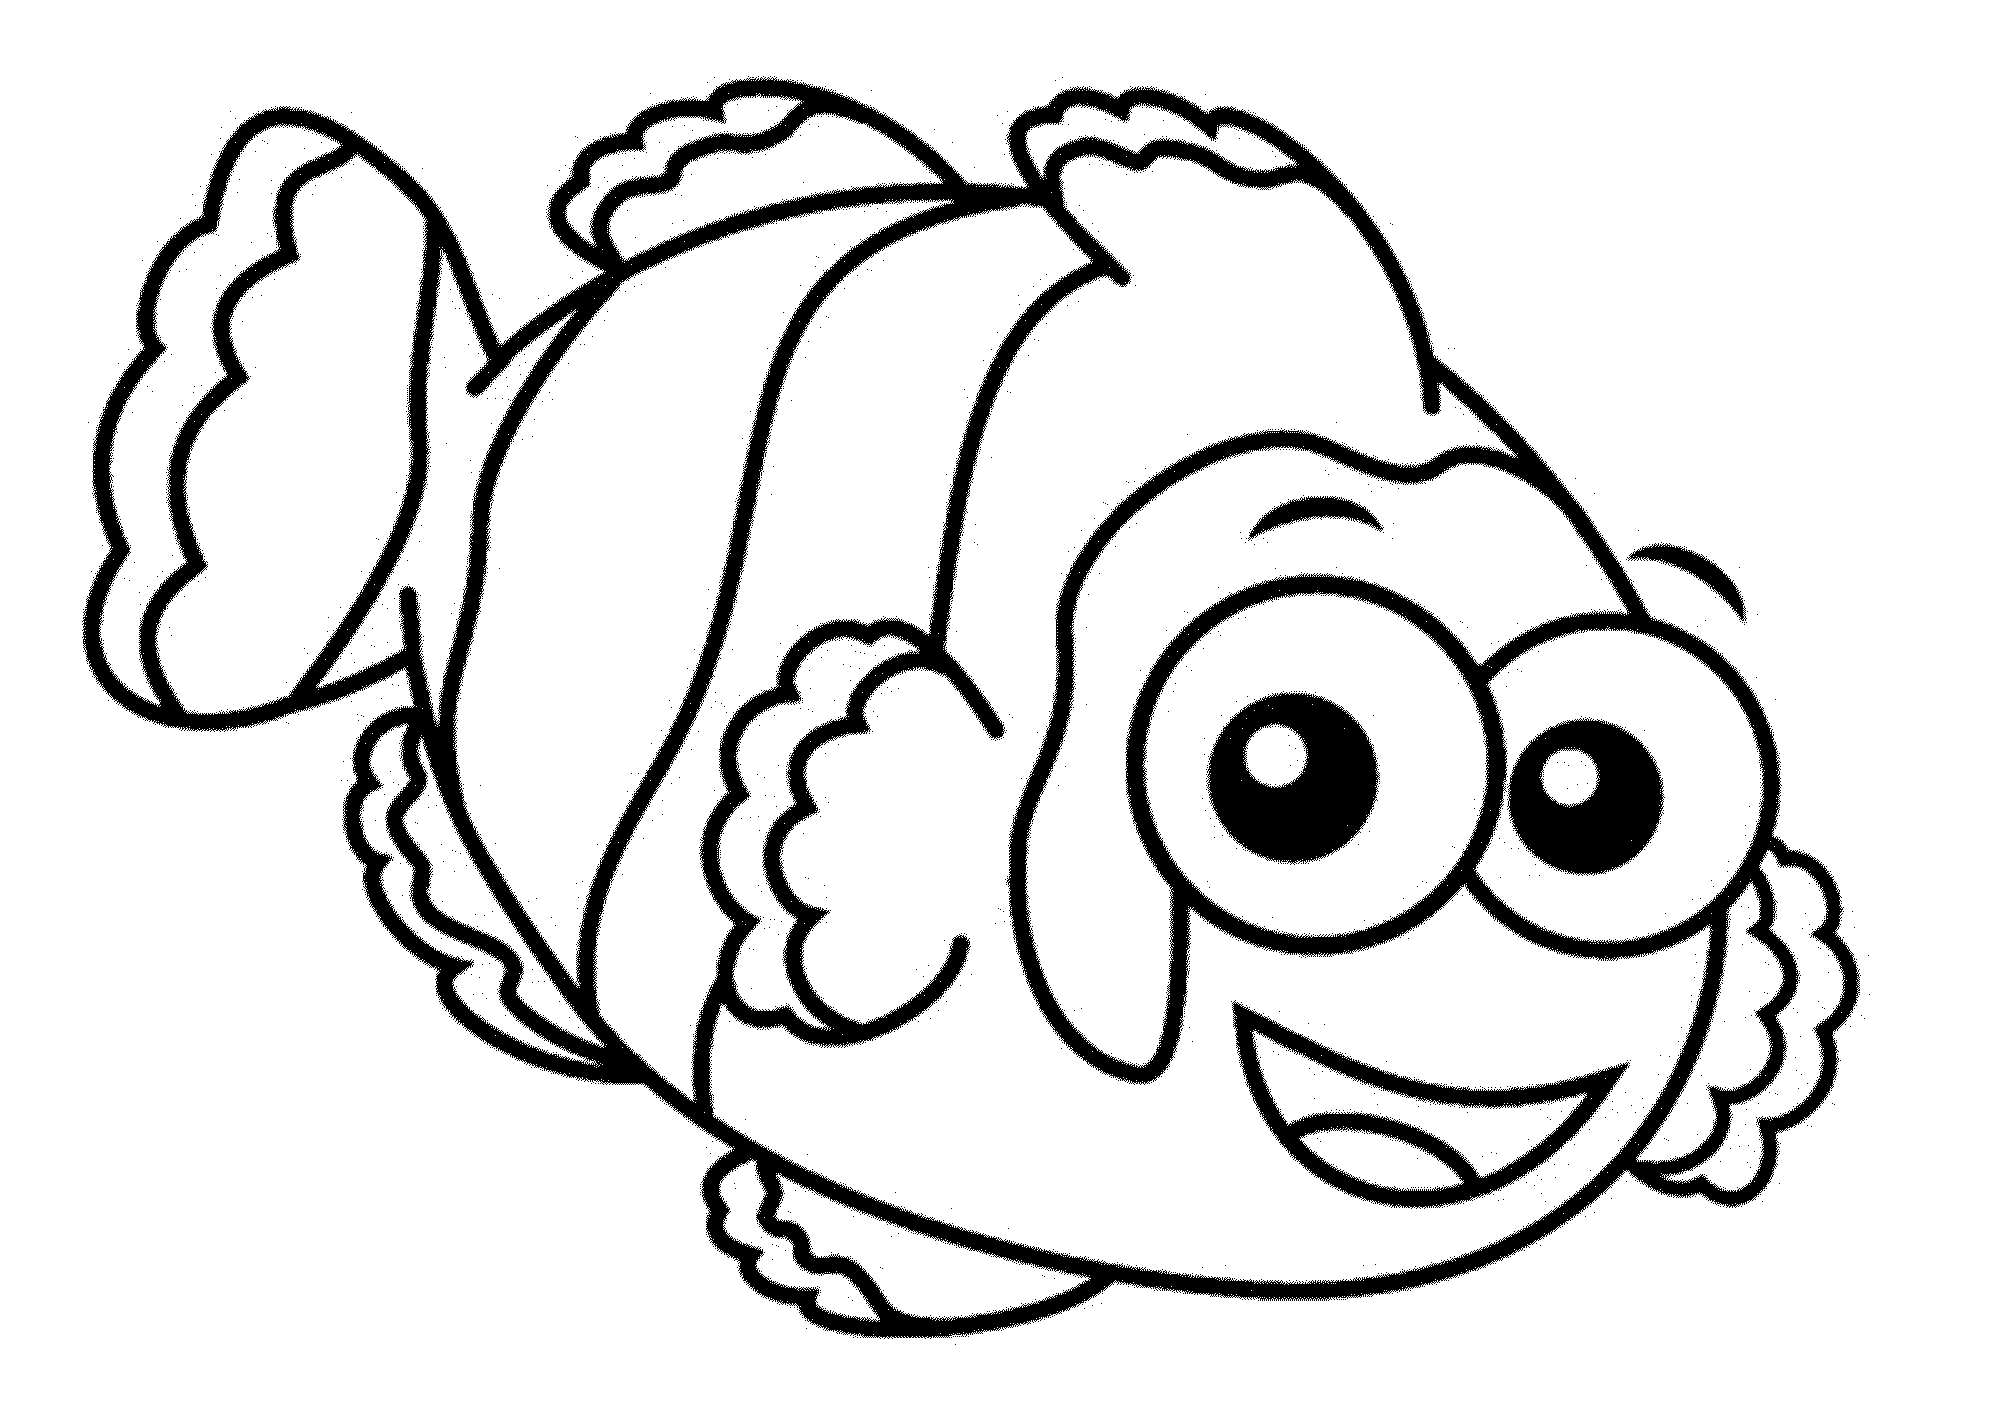 fish coloring pages for kids Print & Download   Cute and Educative Fish Coloring Pages fish coloring pages for kids